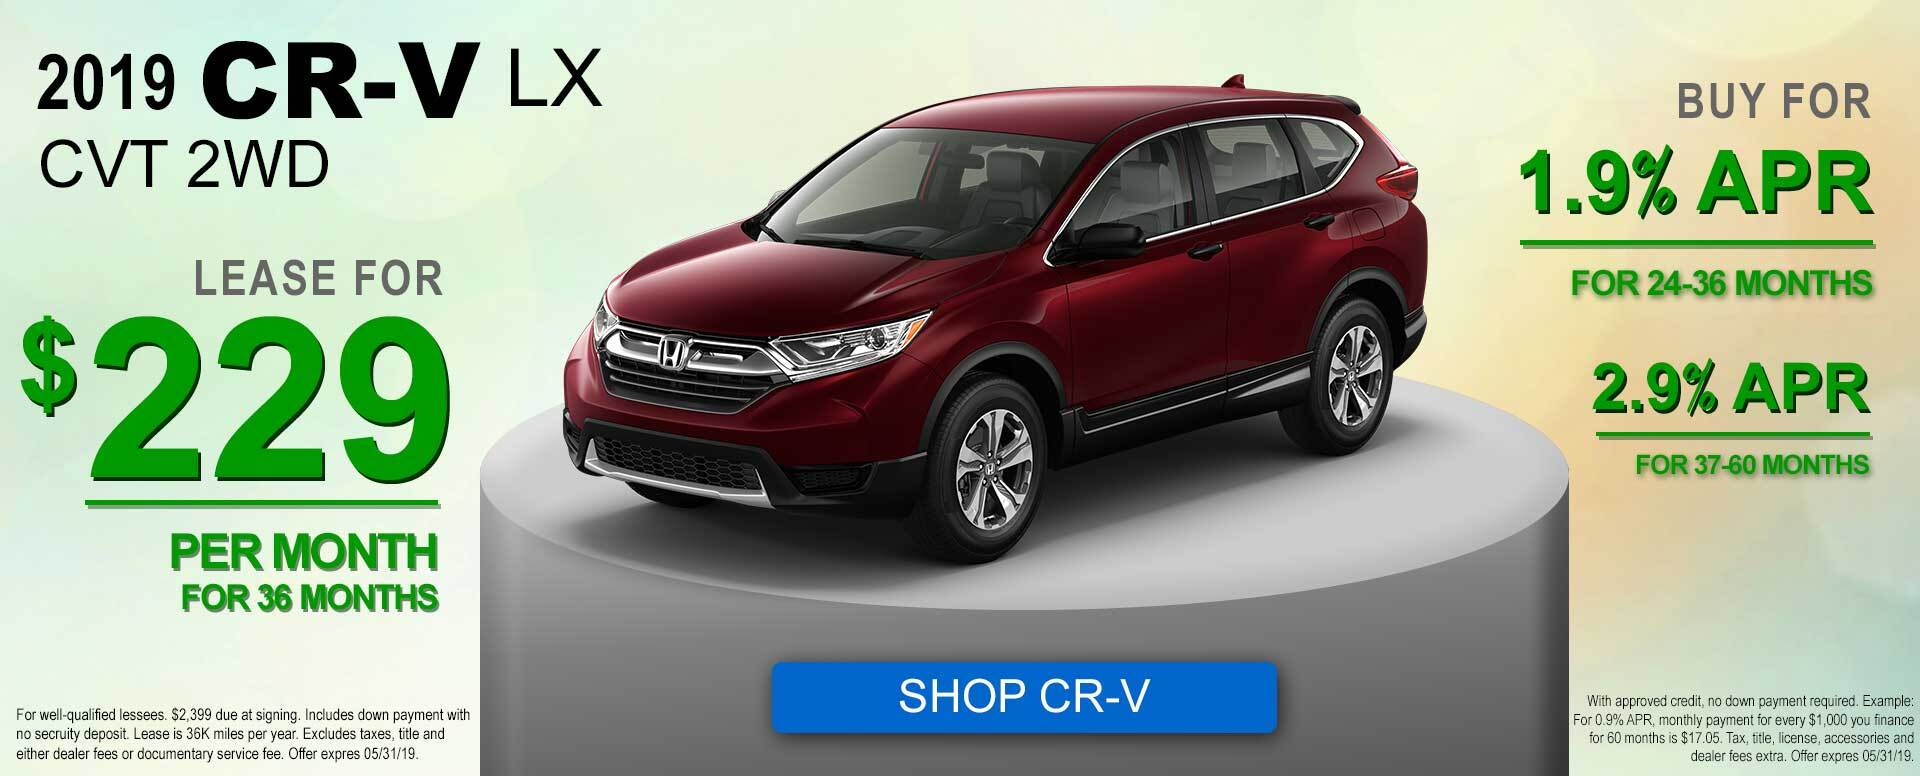 2019 CR-V LX Lease and APR Offer